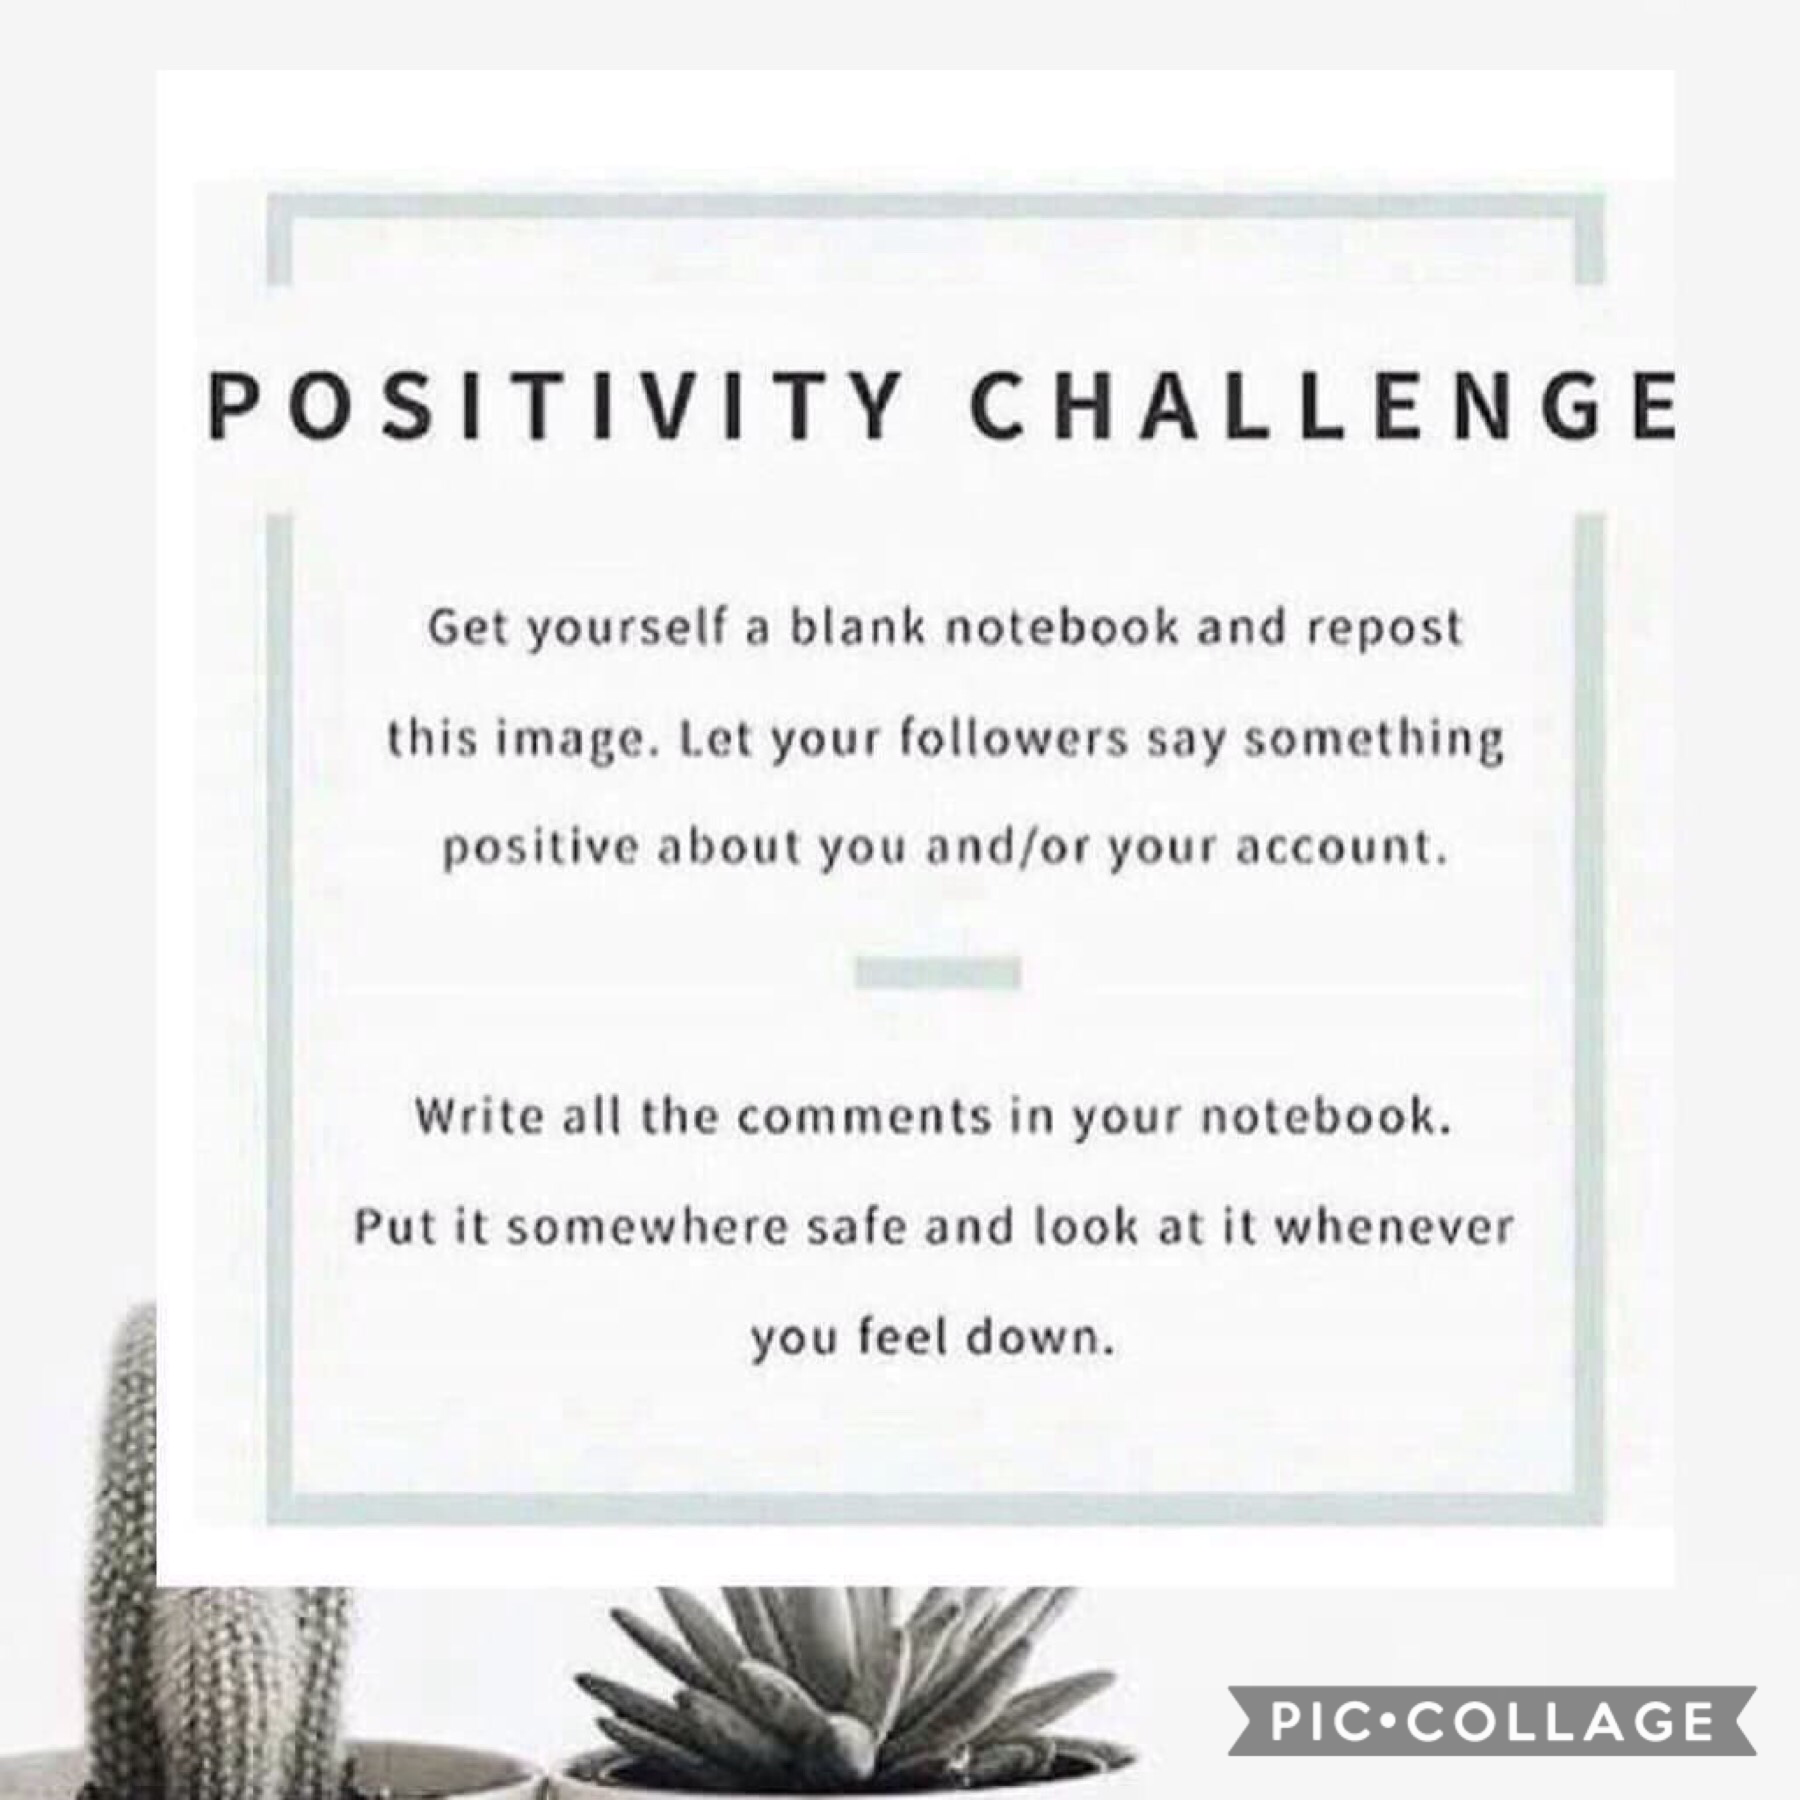 | clickk |  pc is more dead than ever :/ there's no more comments or likes on my acc anymore  really needing some positivity rn bc of my self-hate beating me up and anxiety tearing me apart  yes i have anxiety  if u read this comment: 🤕 ily pls spread pos